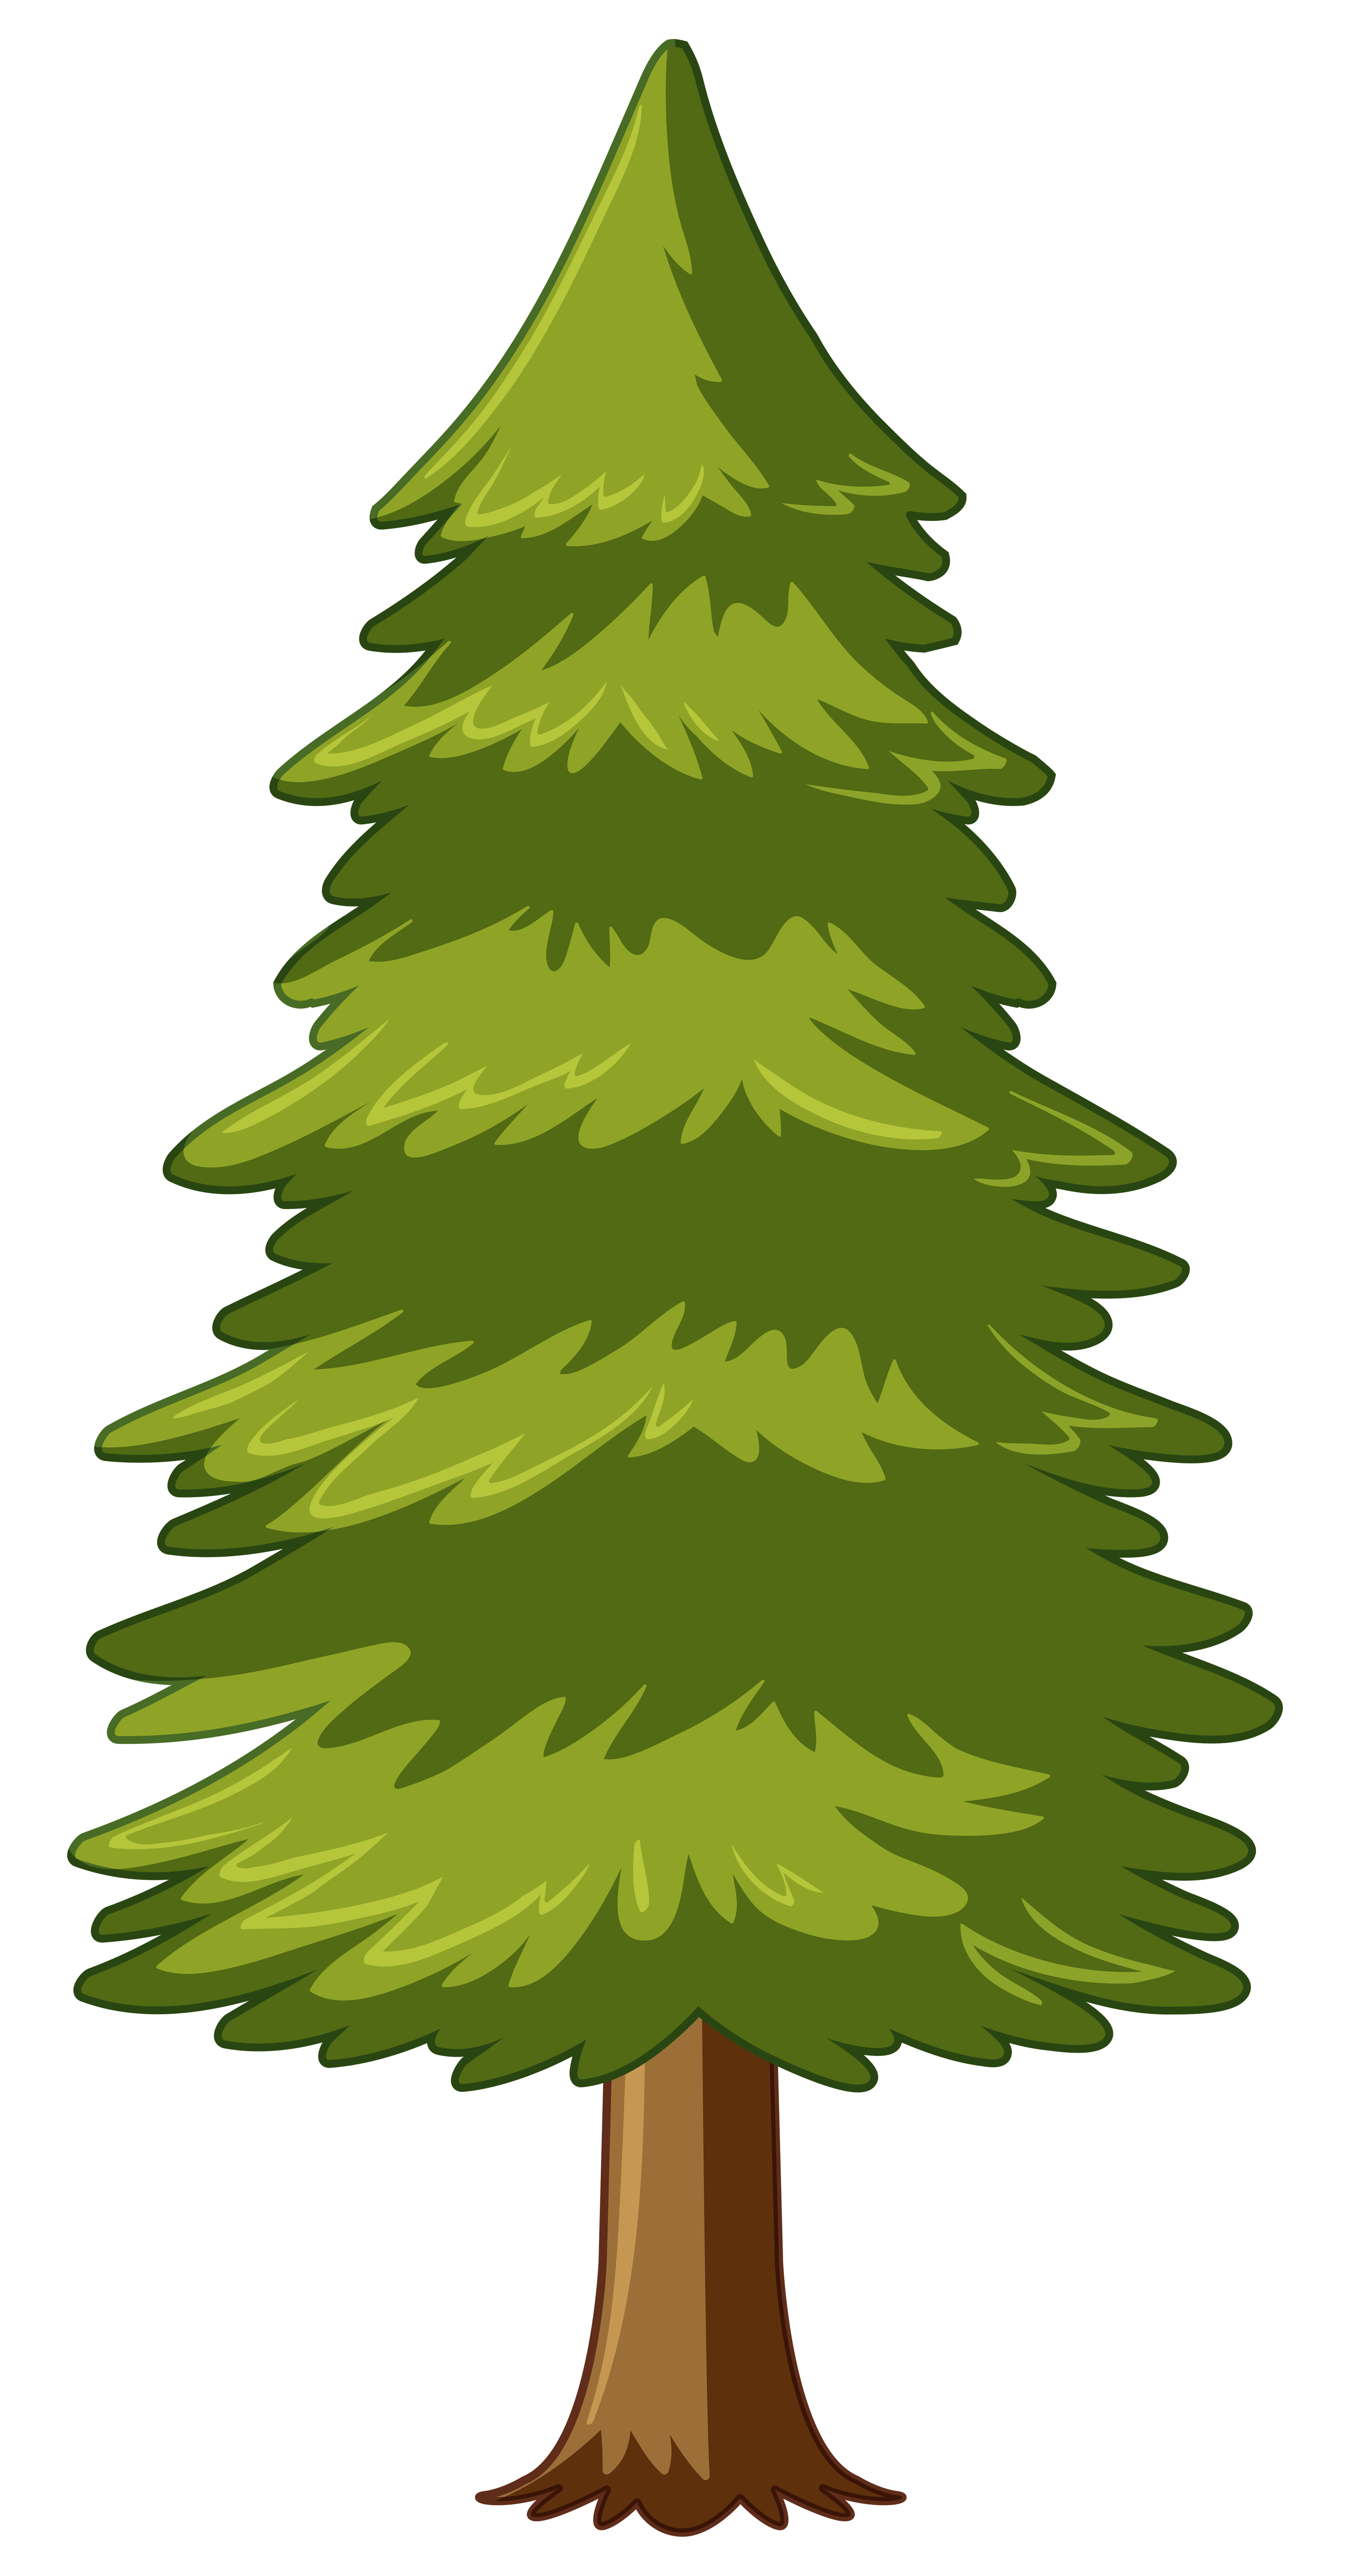 Pine tree on white background - Download Free Vectors ...